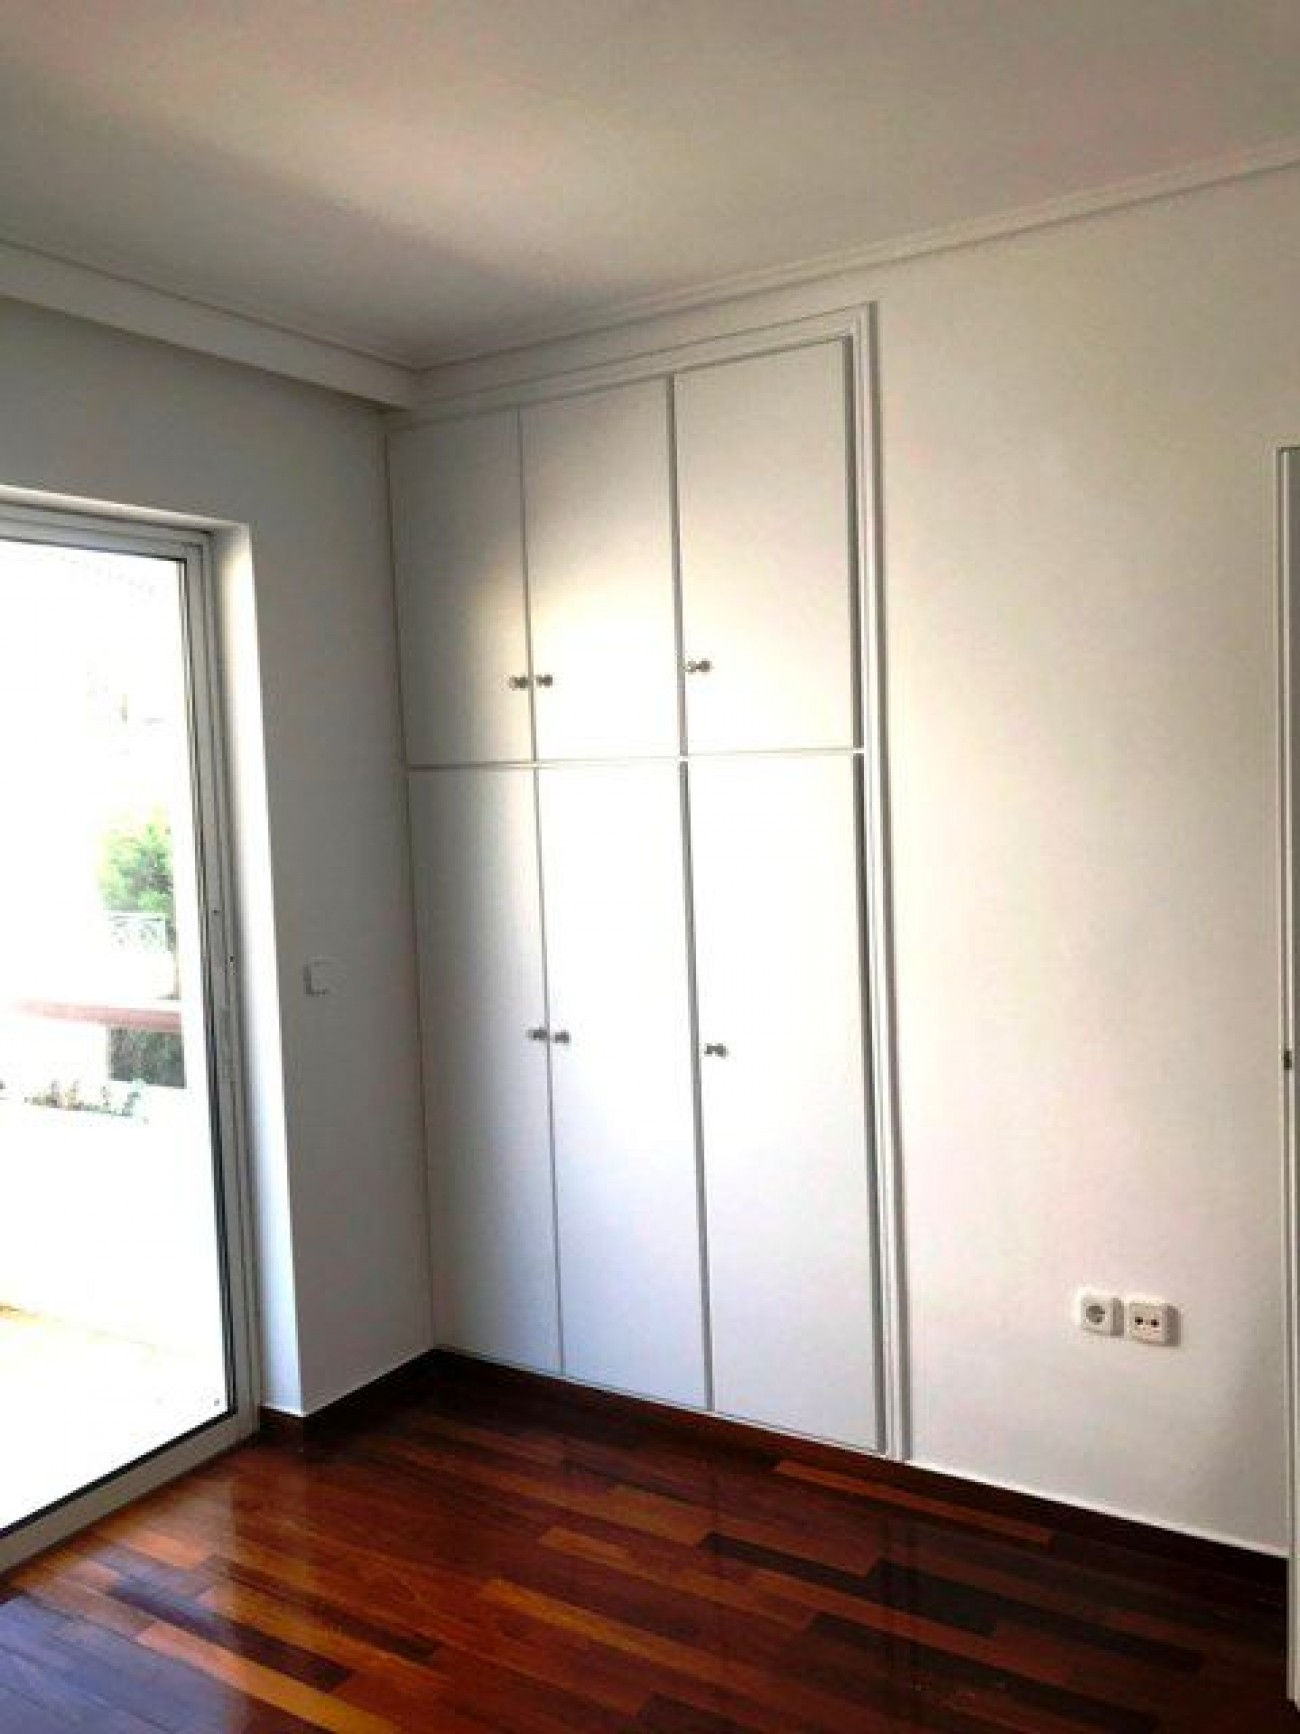 Apartment for Rent in Glyfada, Central & South Region of Athens, Greece